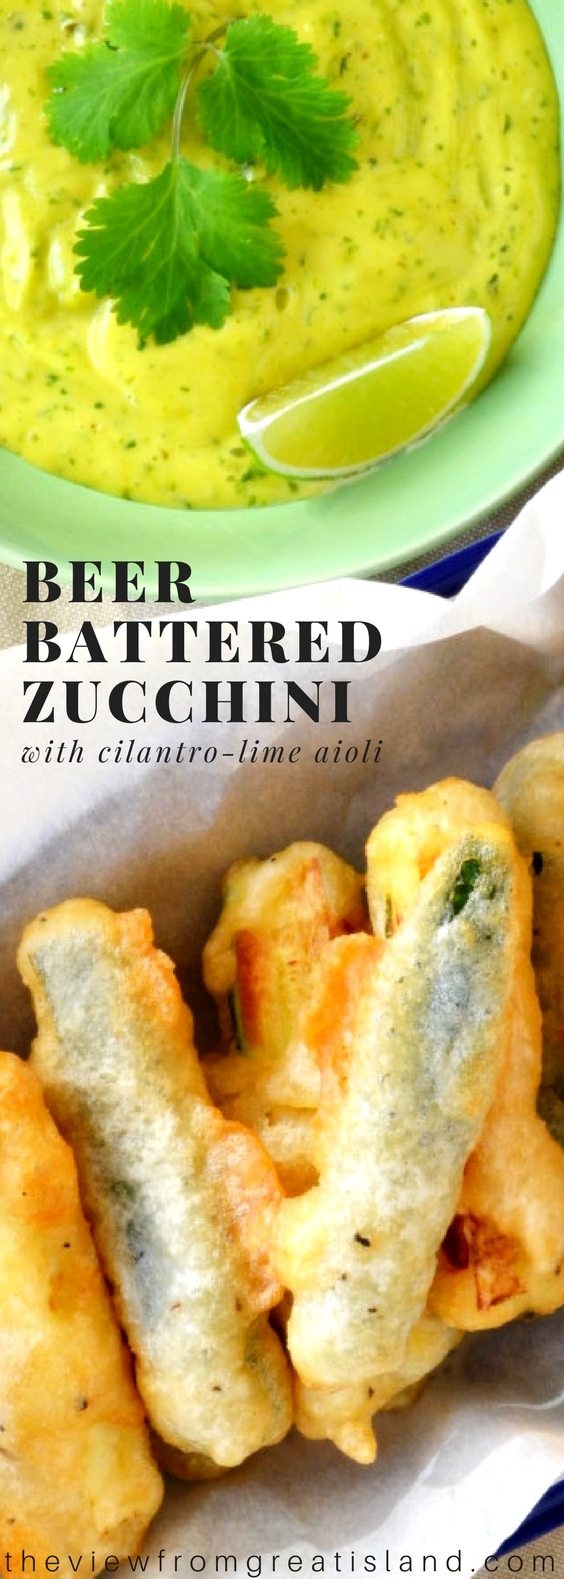 Beer Battered Zucchini with Lime Cilantro Aioli ~ what's not to love about this crispy fried zucchini and zesty dip? This is going to the favorite appetizer at your next party, guaranteed! #beerbatter #zucchini #friedzucchini #appetizer #aioli #appetizerrecipe #